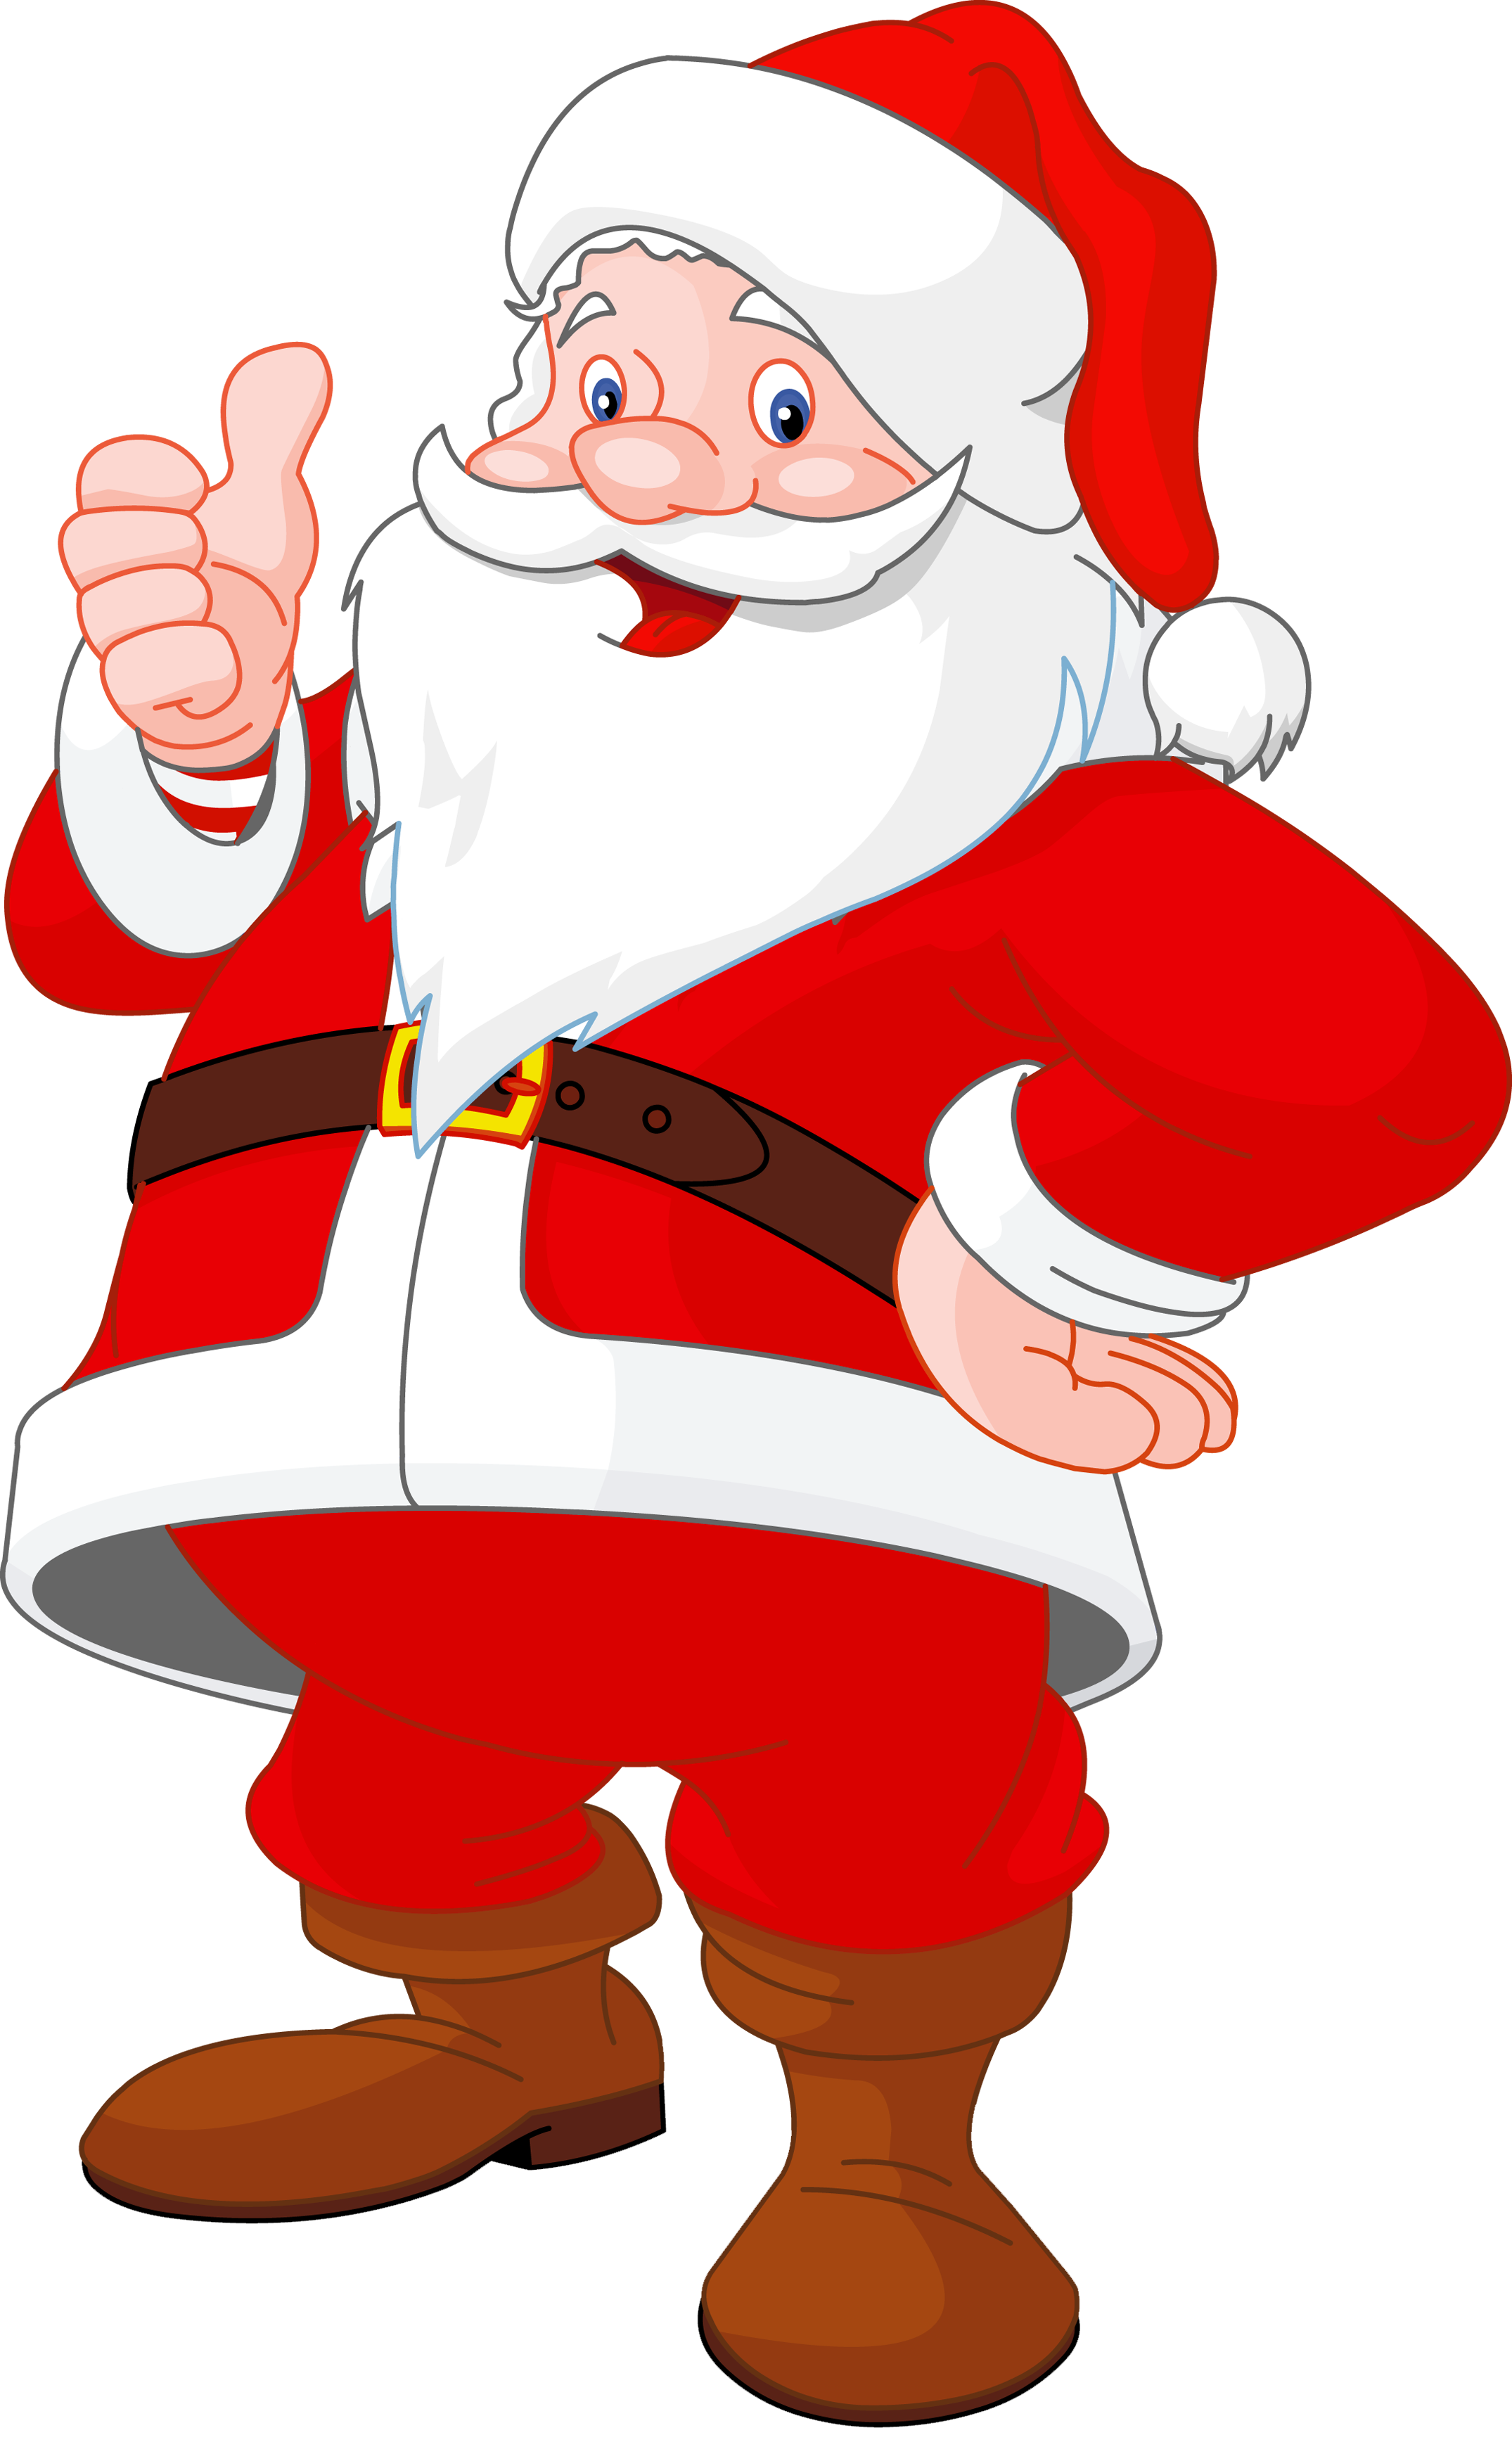 Golfer clipart santa, Golfer santa Transparent FREE for.